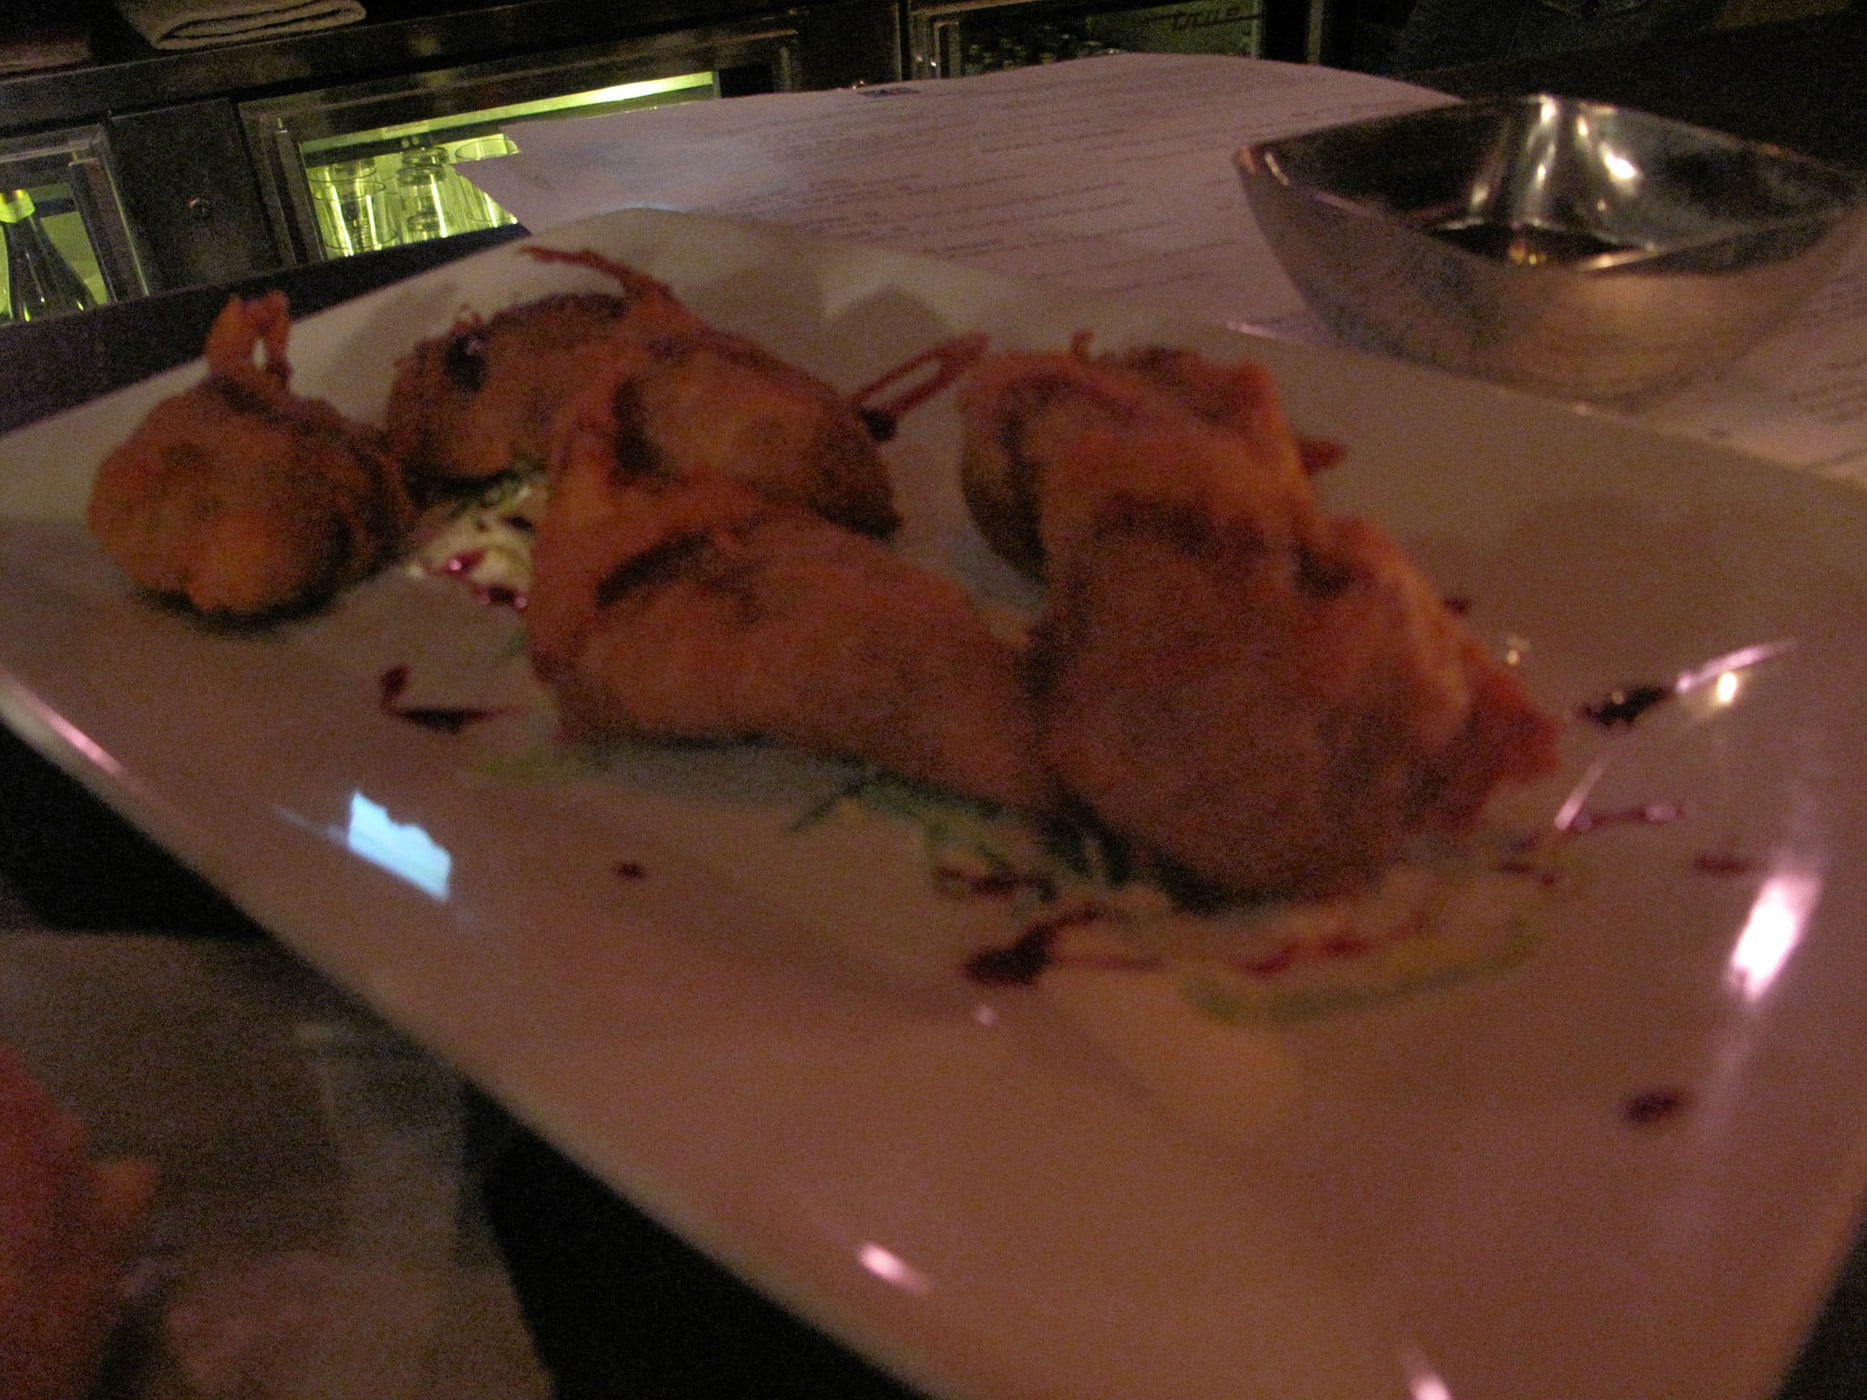 Sweet potato fritters at Volo Wine Bar in Chicago